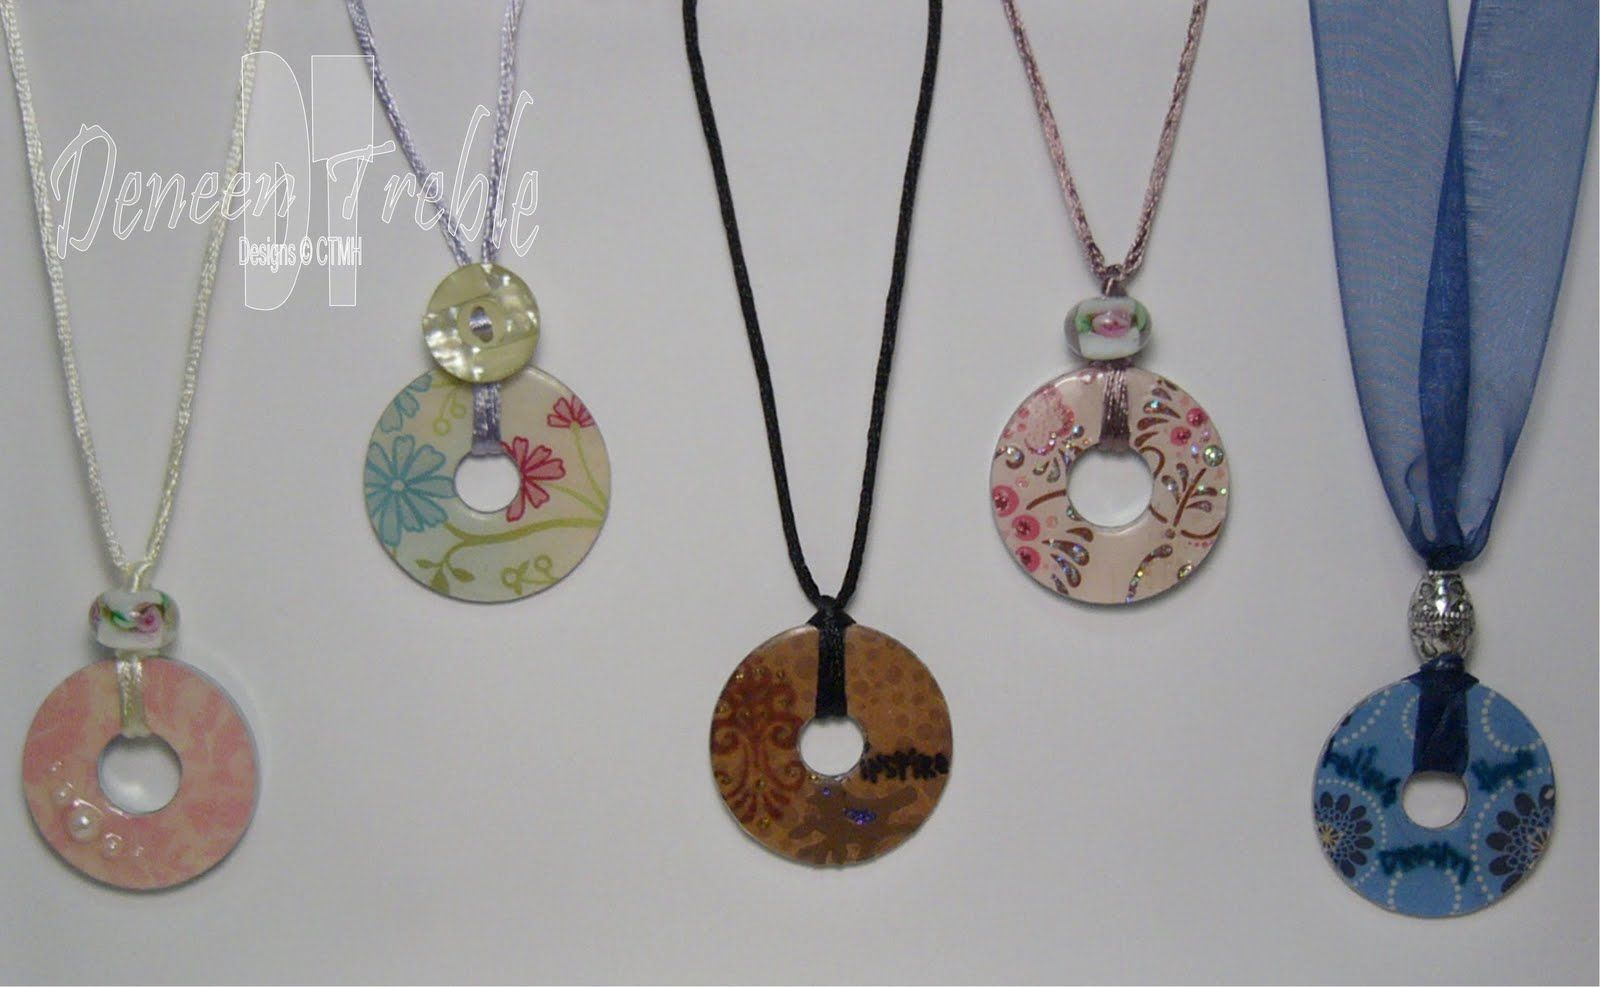 A path of paper washer pendant necklaces keychains washer a path of paper washer pendant necklaces keychains audiocablefo